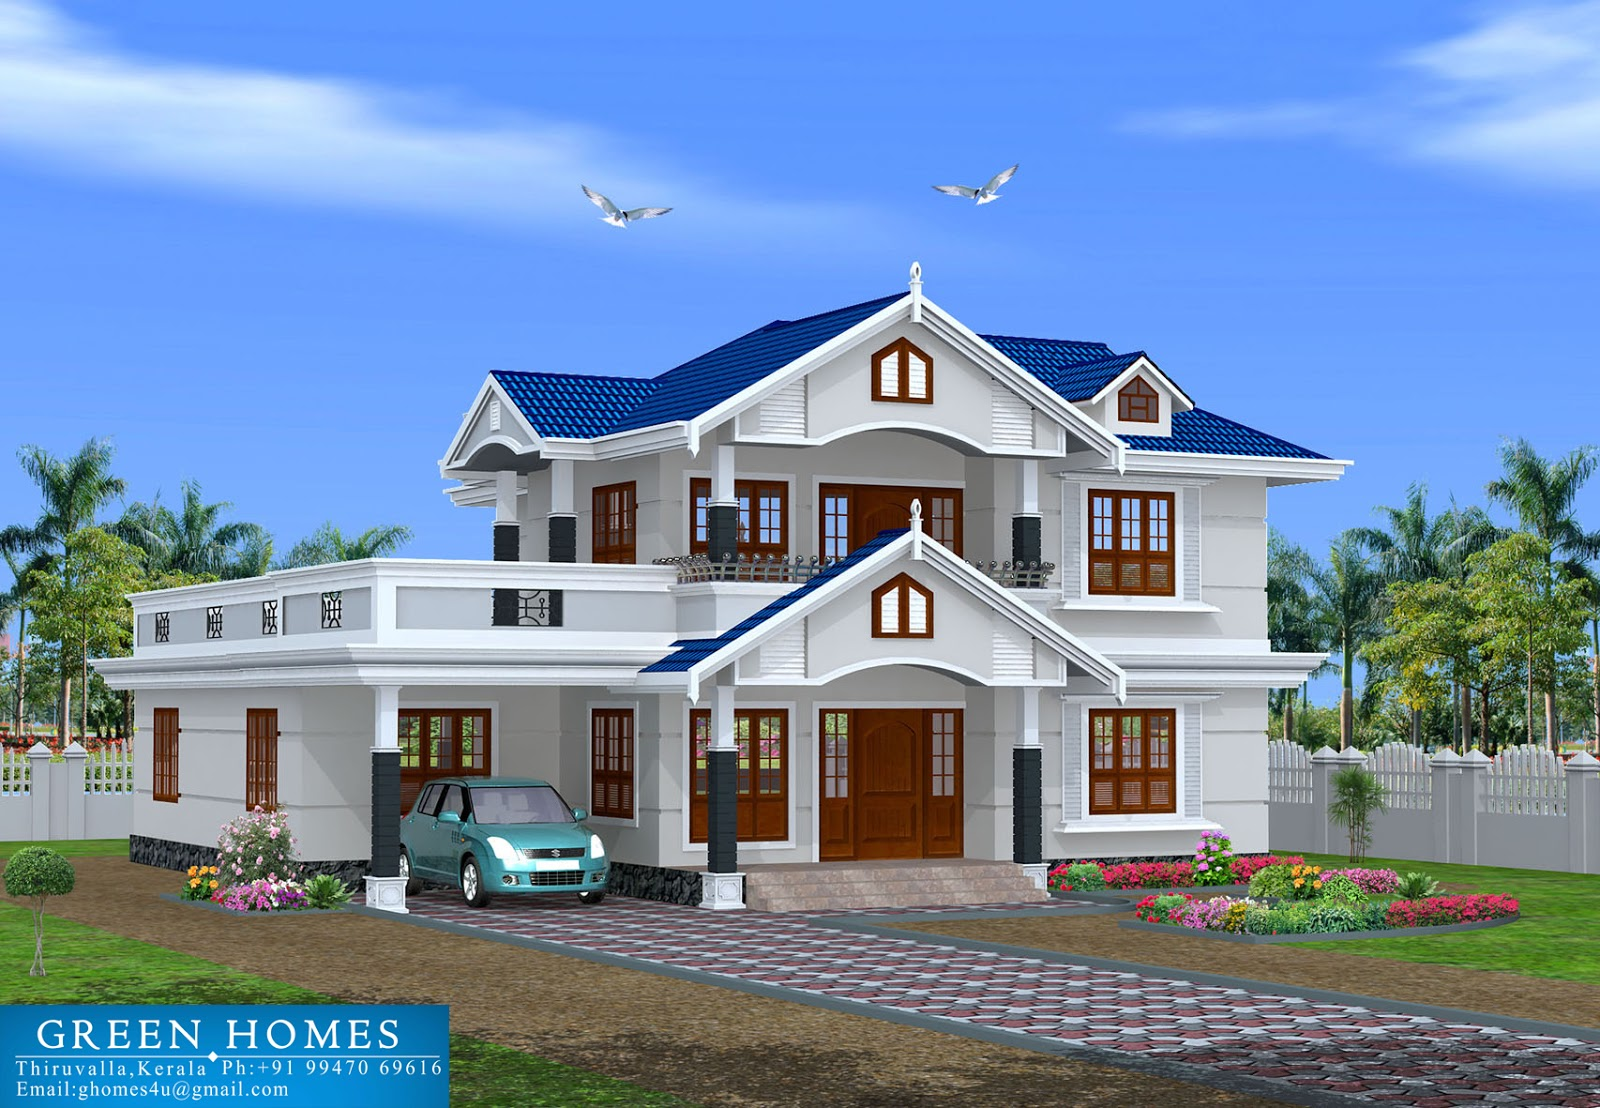 Green homes november 2012 Home builders house plans